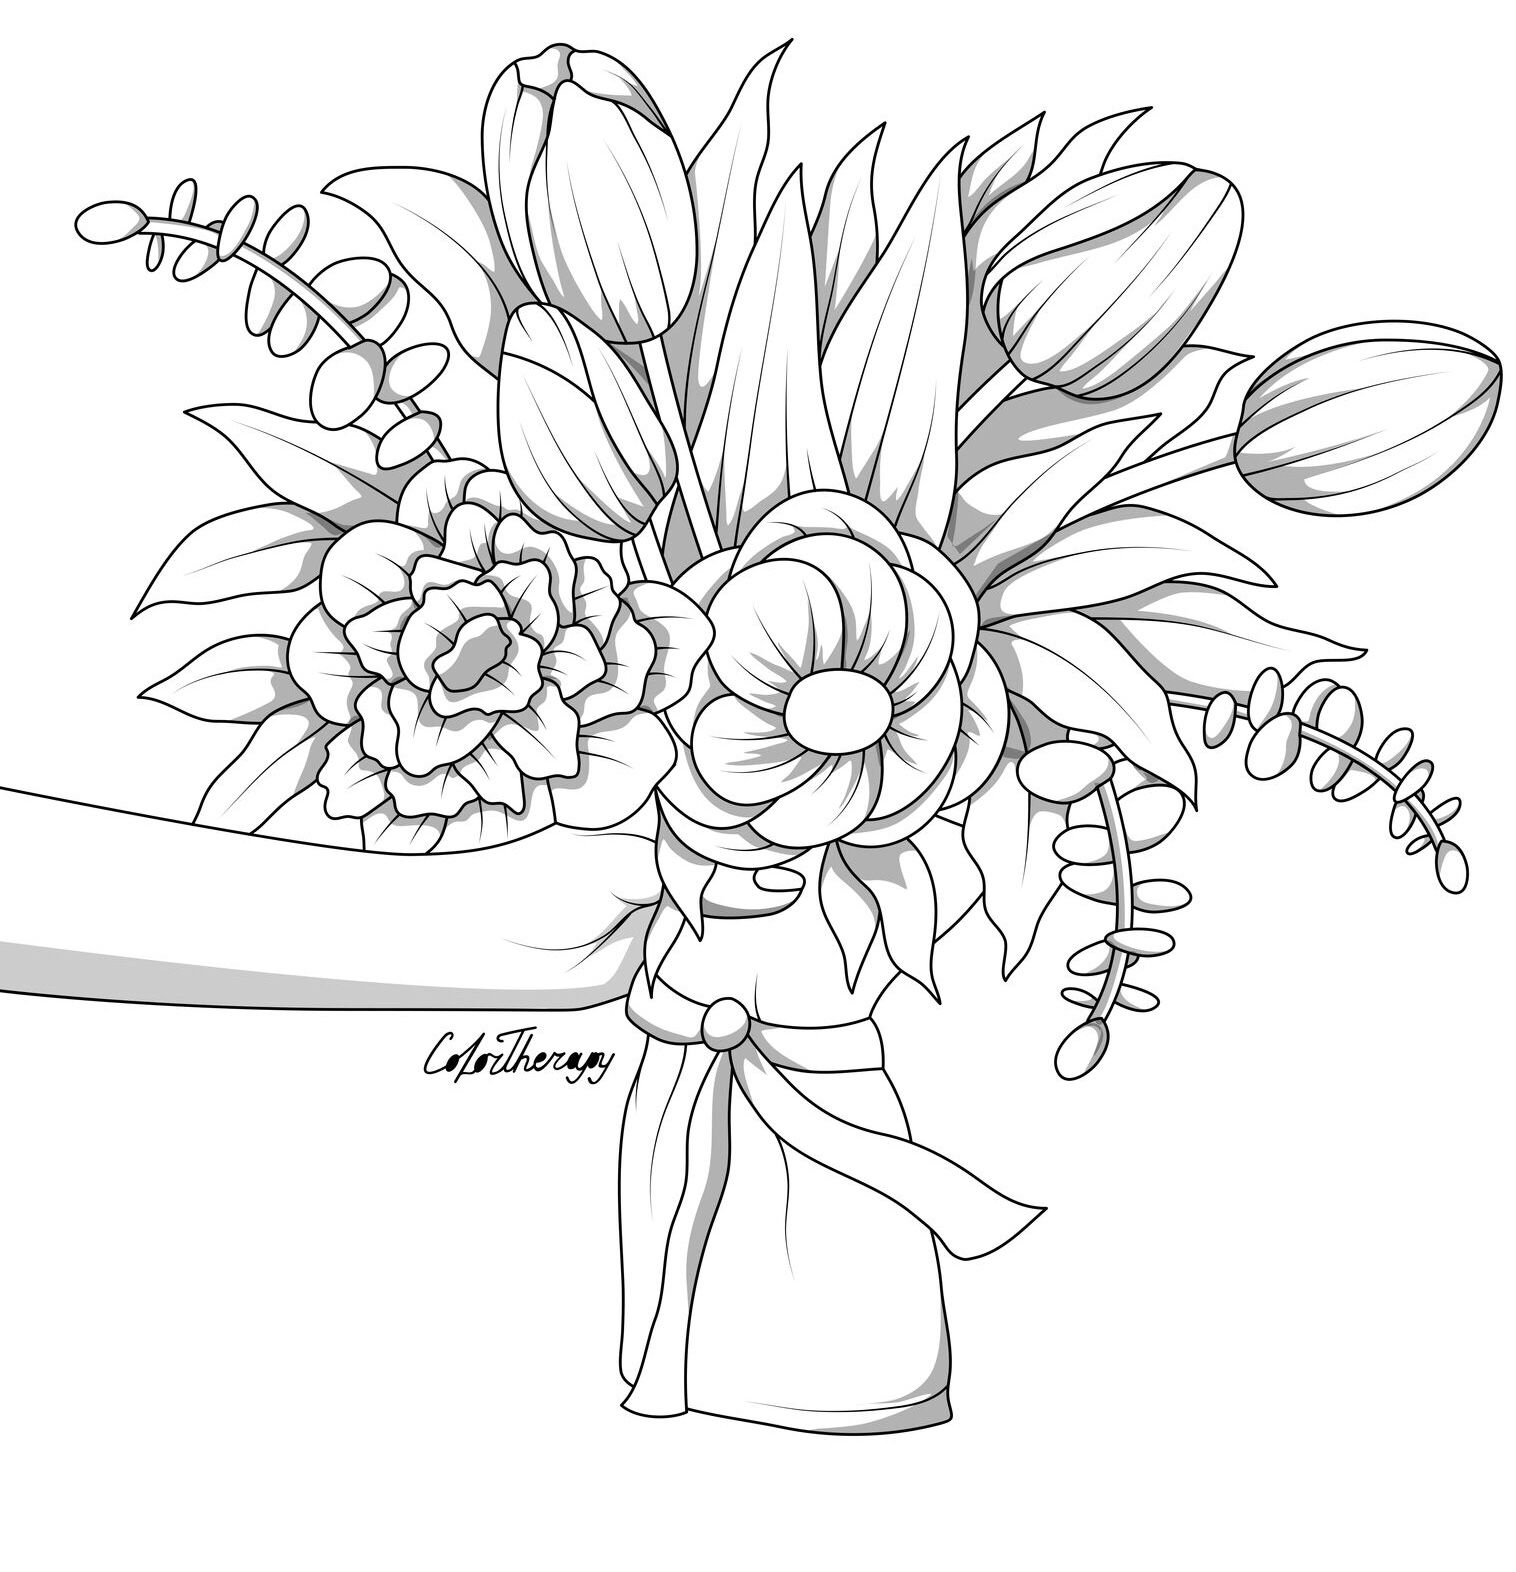 The Sneak Peek For The Next Gift Of The Day Tomorrow Do You Like This One Paper Bag Flower Mandala Coloring Pages Flower Coloring Pages Color Therapy